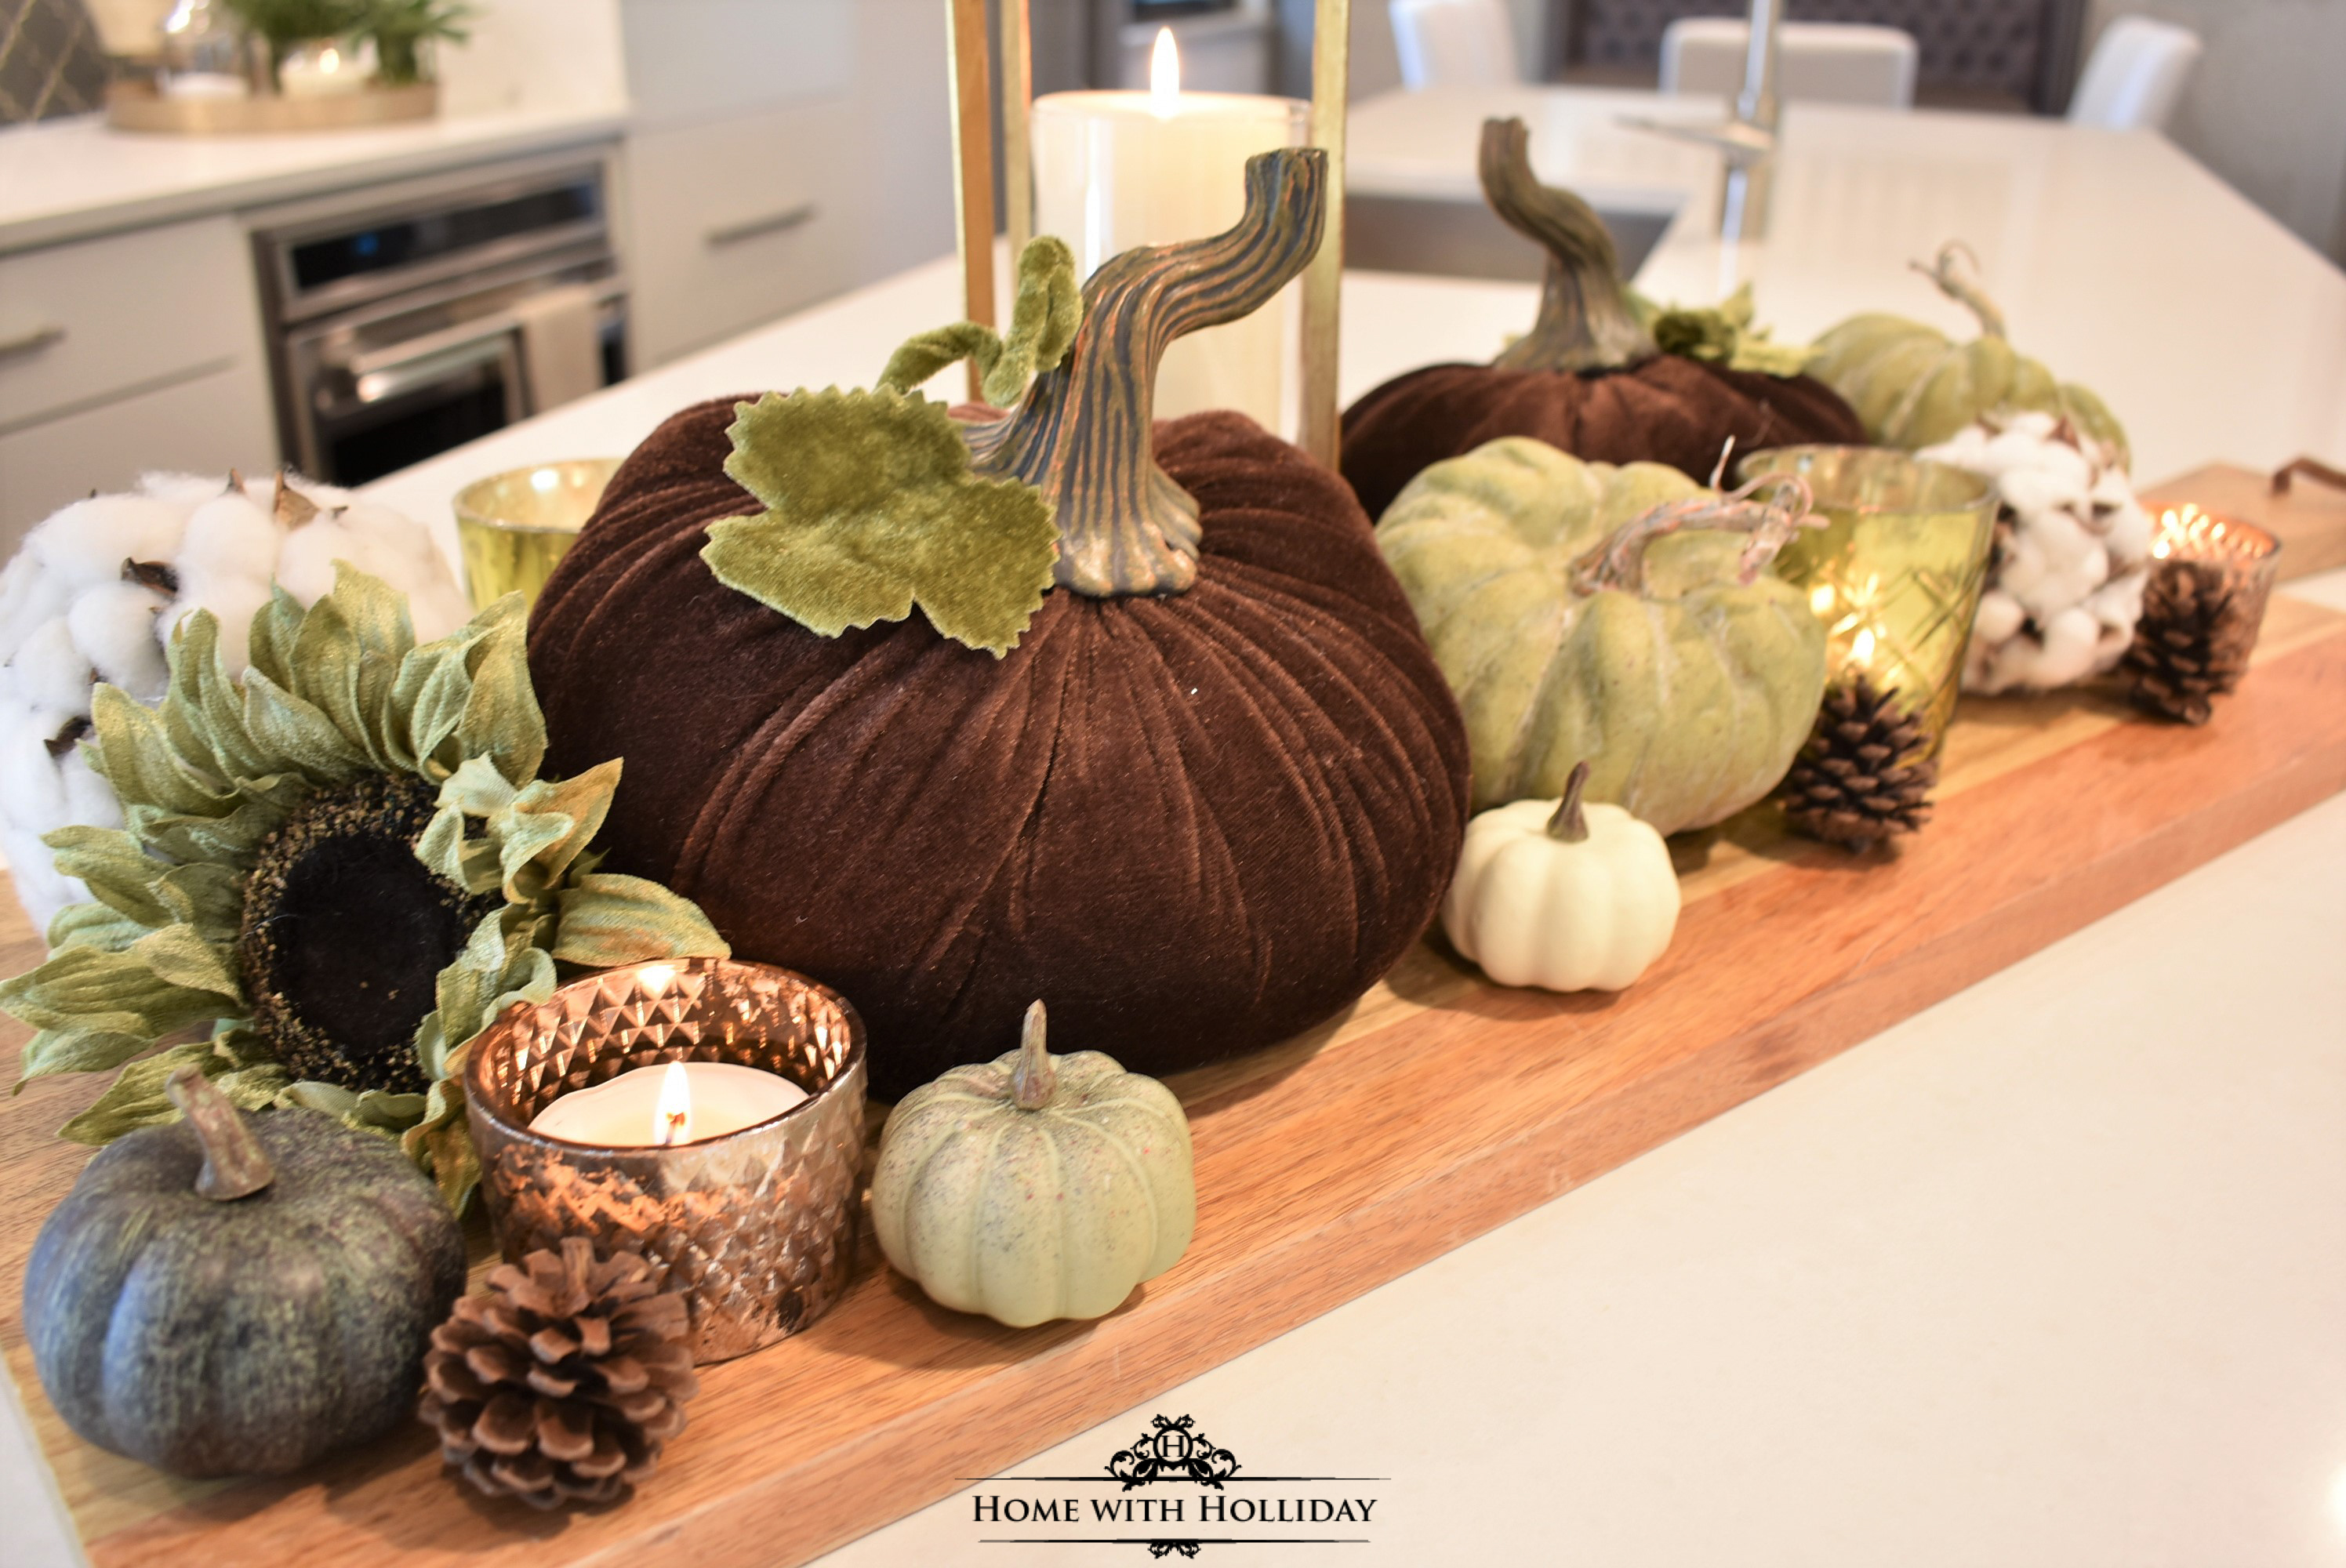 Fall Vignette with Velvet Pumpkins - 6